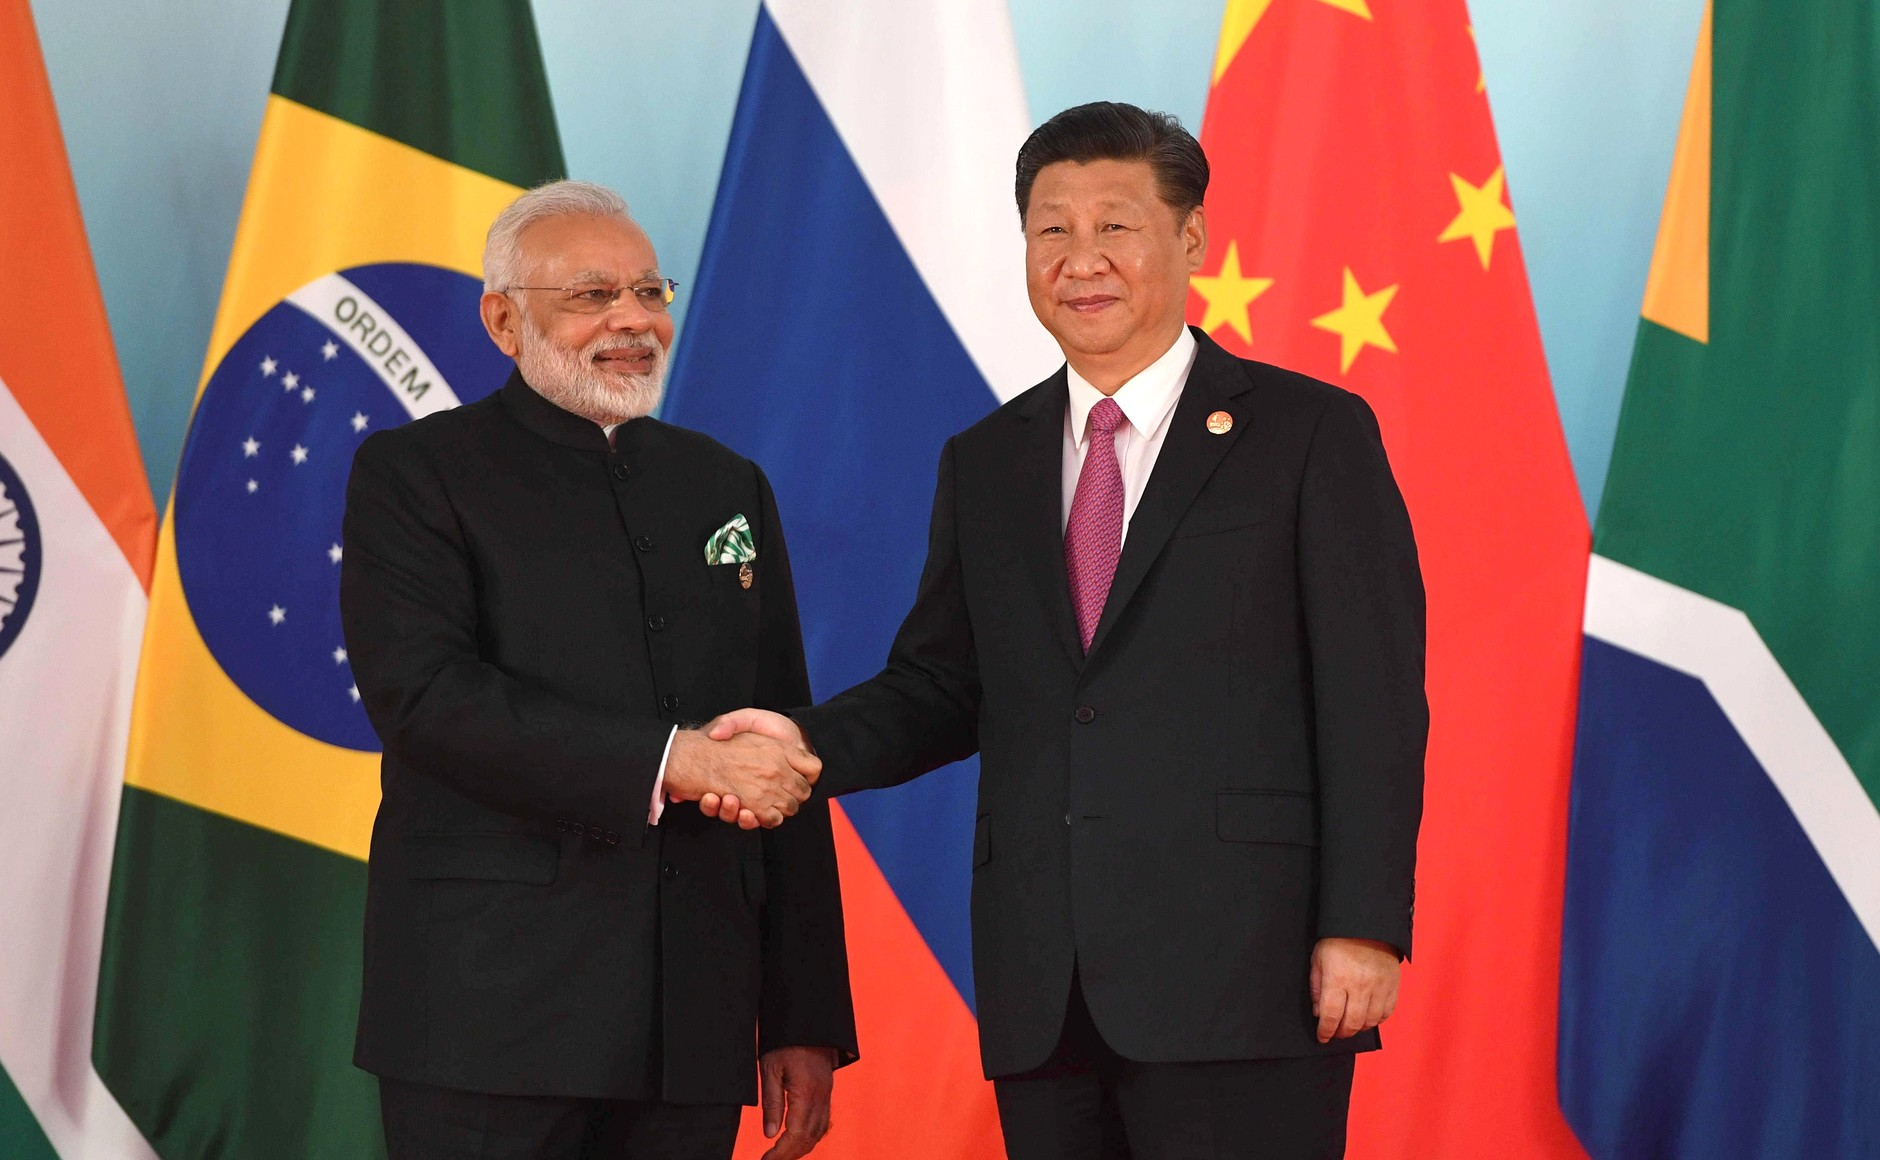 India, China to hold 70 events to mark 70 years of diplomatic ties